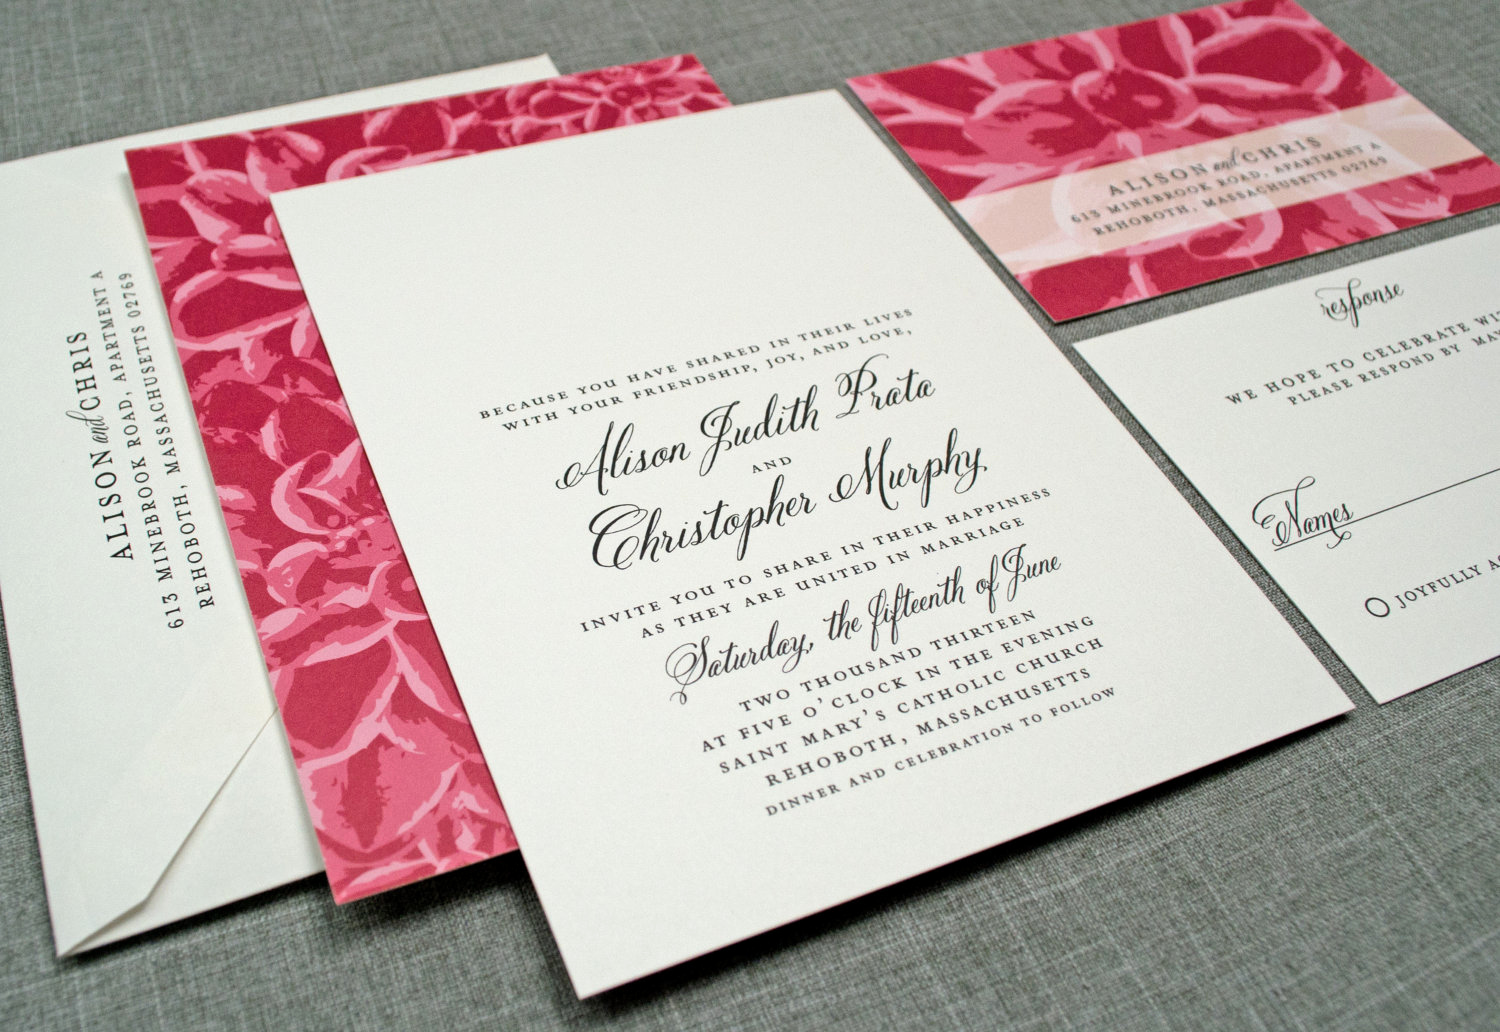 Wedding Invitations with Pictures New Do It Yourself Wedding Invitations Ideas